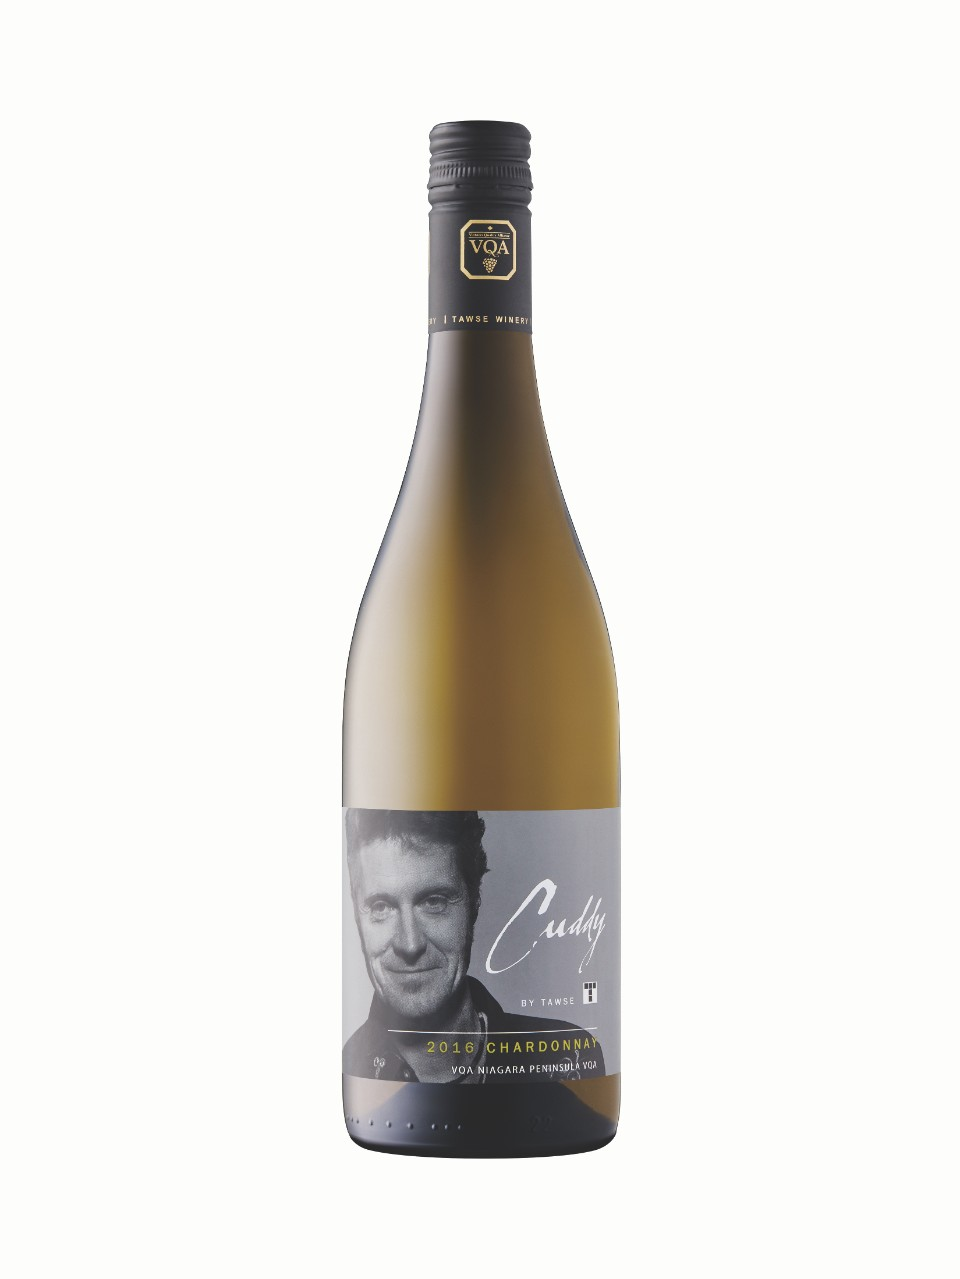 Image for Cuddy by Tawse Chardonnay 2014 from LCBO